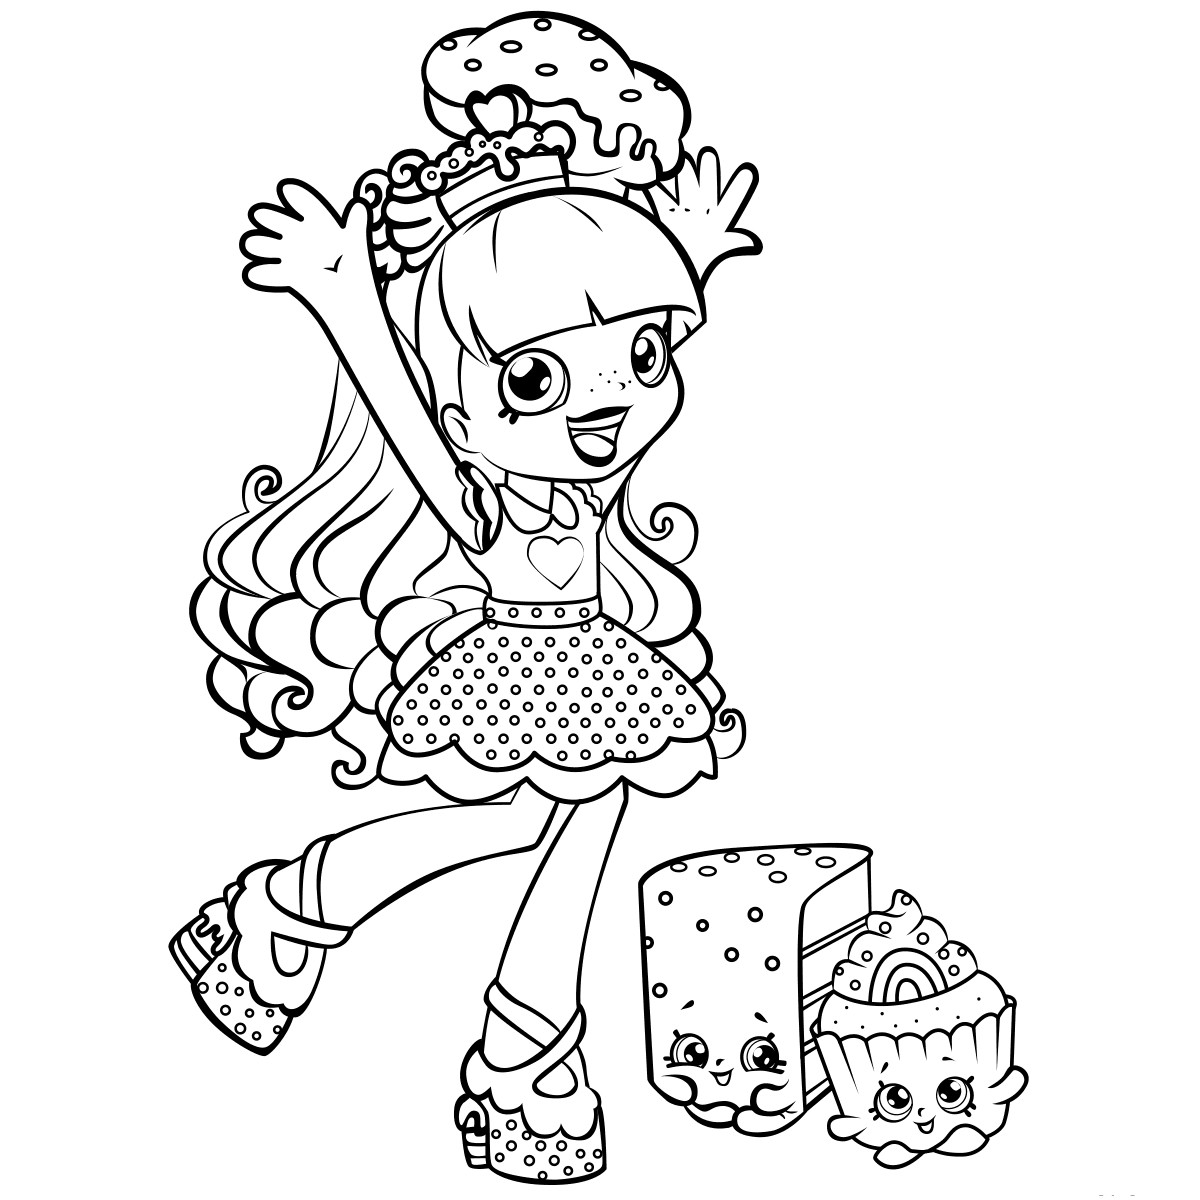 Best ideas about Shopkins Coloring Pages For Girls . Save or Pin Shopkins Coloring Pages Now.